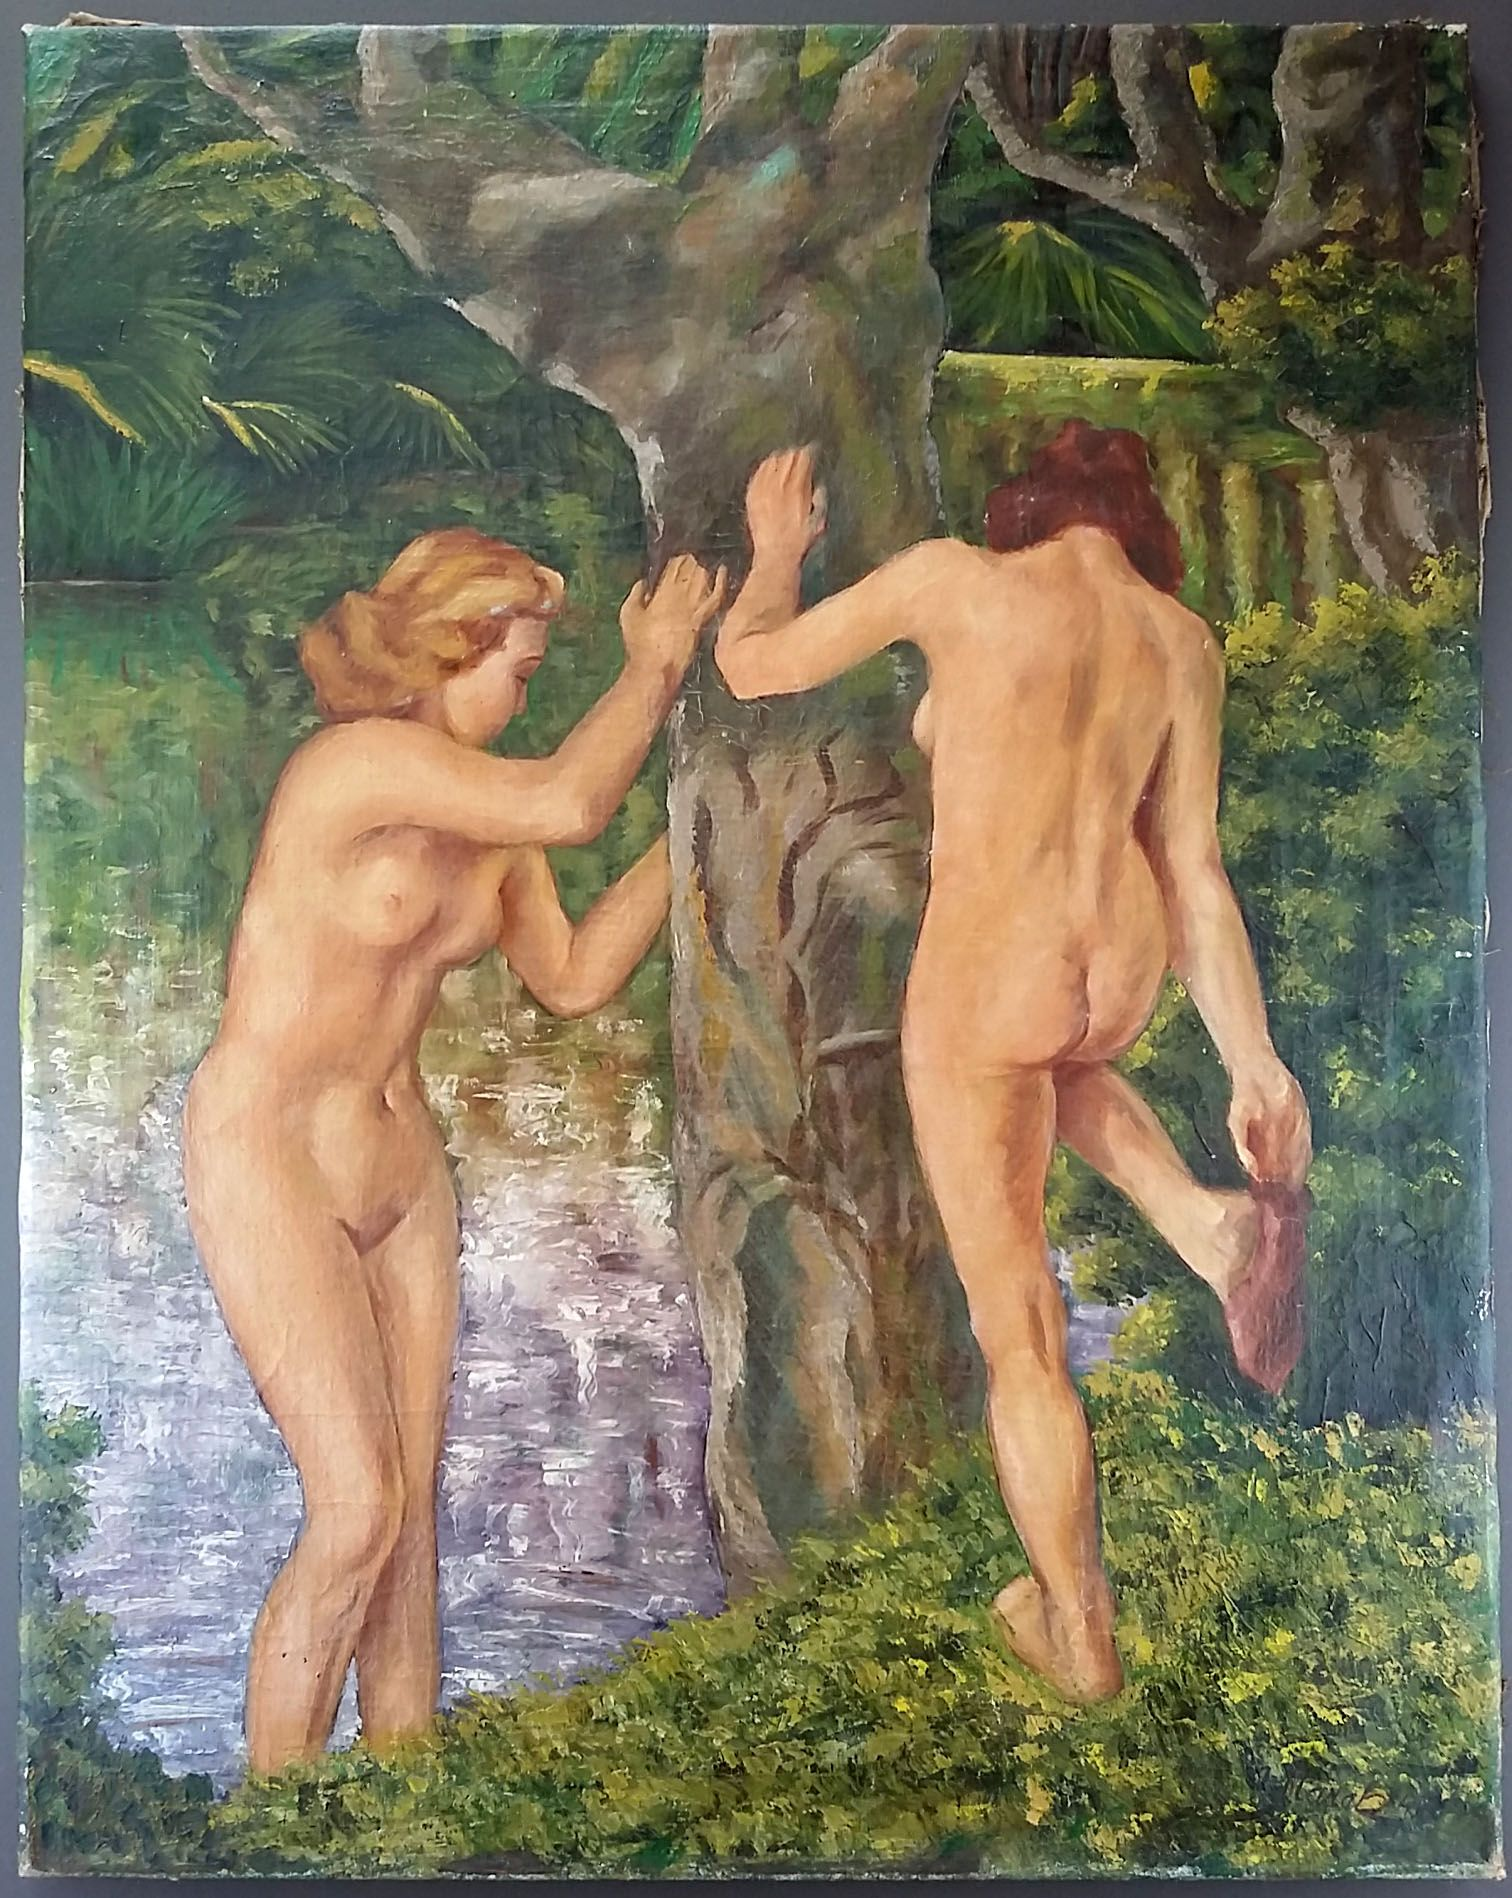 The bathers, in 1947.  The work shows two naked young women near a water source. A beautiful quality painting, very decorative.  Oil on canvas, signed and dated lower right (to decipher).  In good condition (see photos).  Format: 72 cm x 57 cm (28.3 in x 22.4 in).